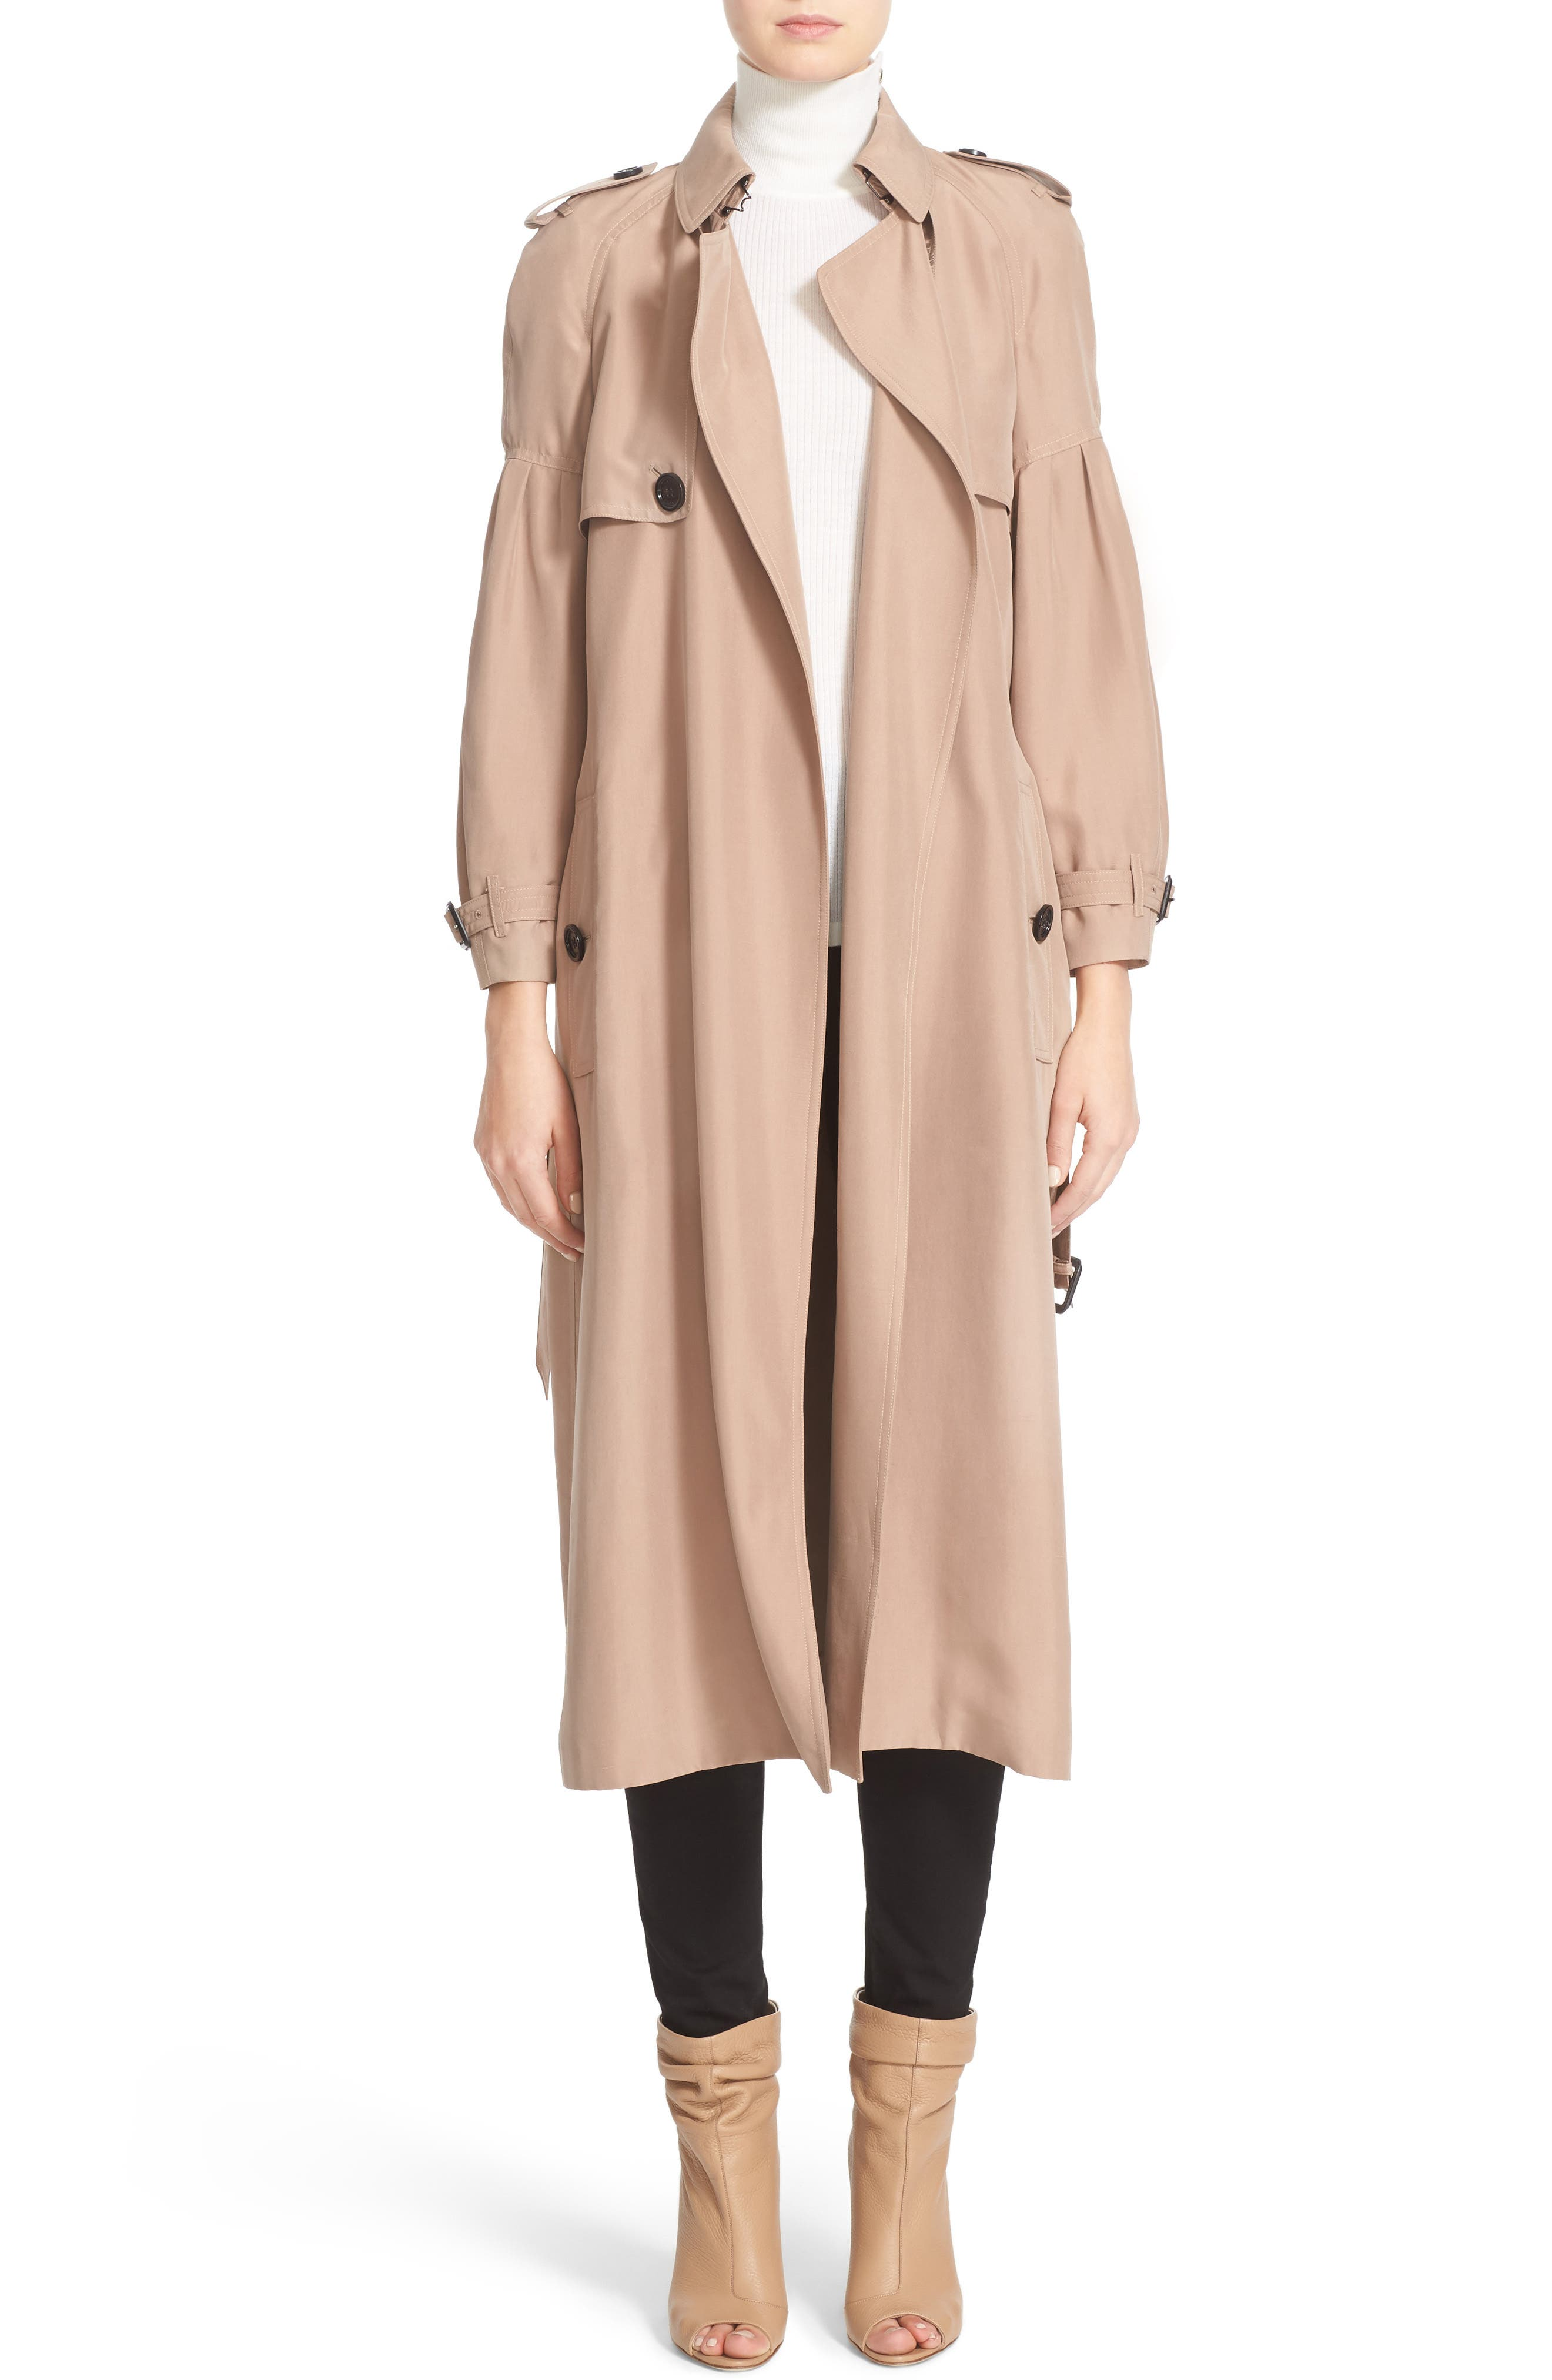 BURBERRY, Maythorne Mulberry Silk Trench, Main thumbnail 1, color, 250